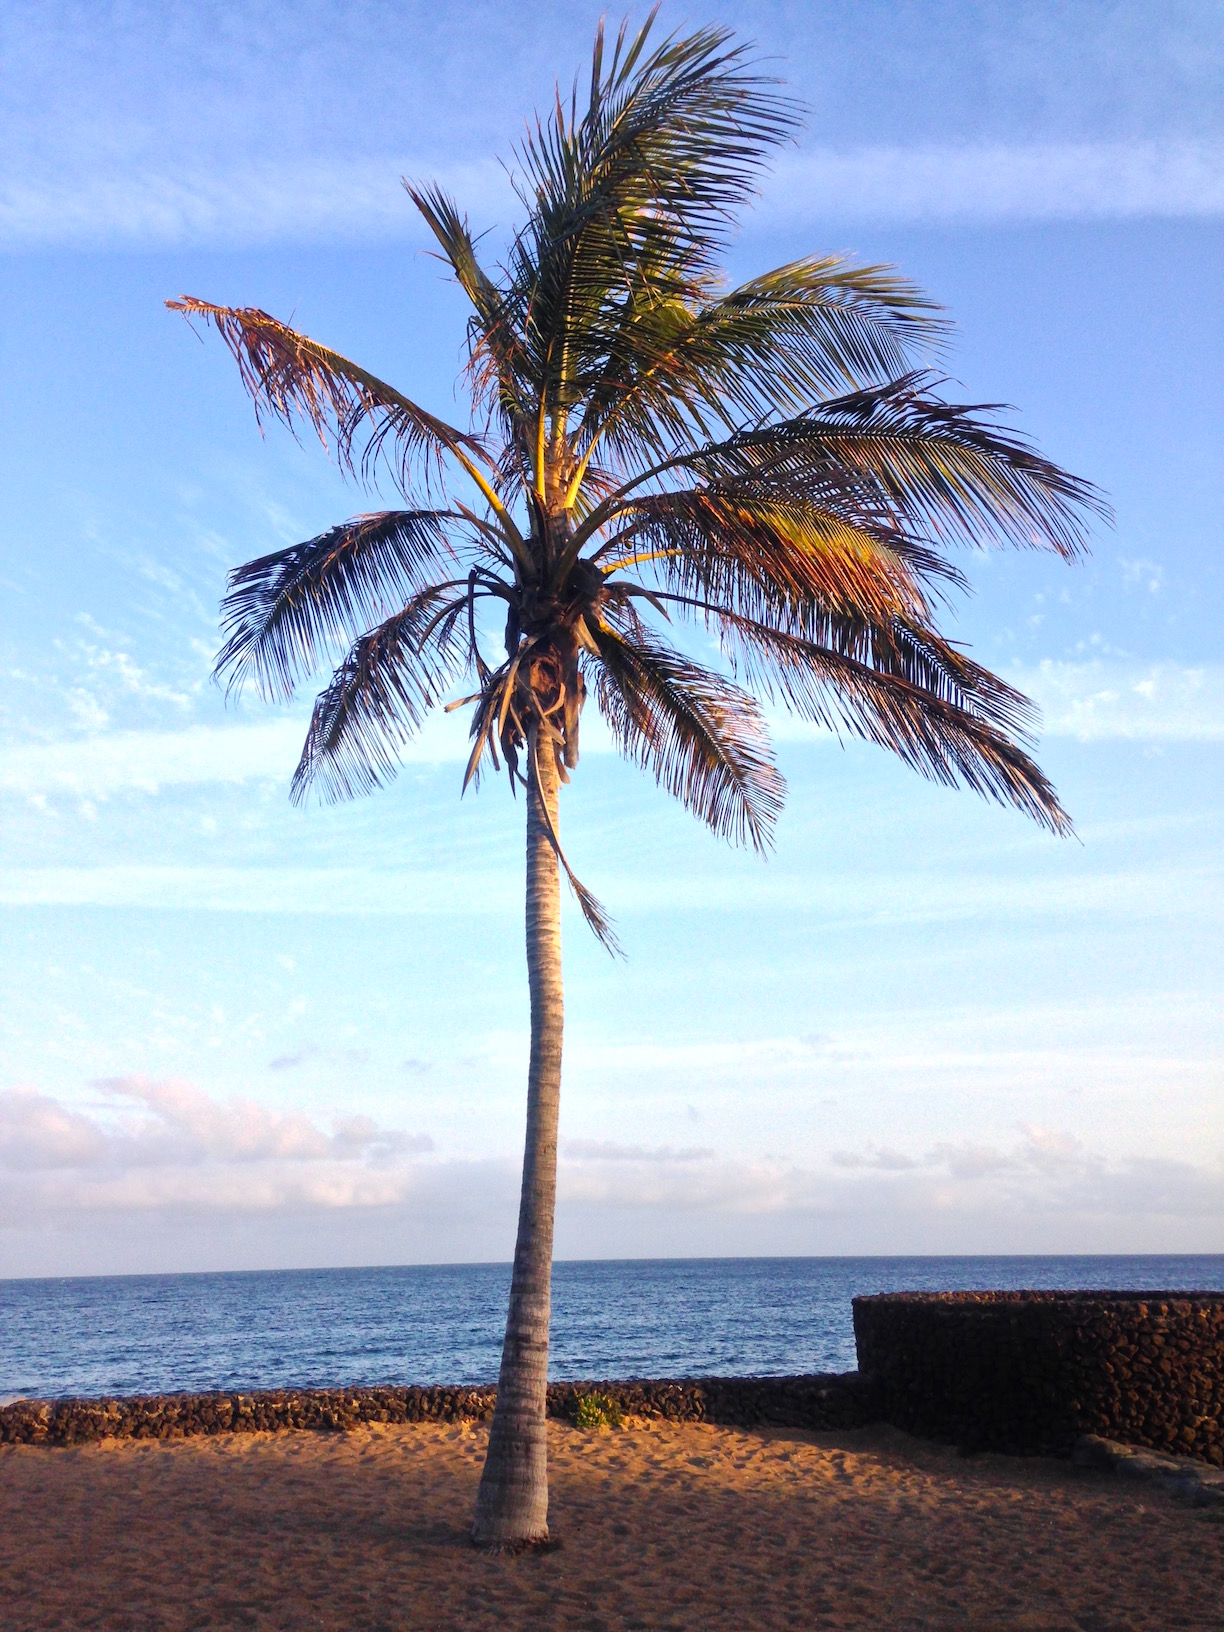 Palm tree on the Costa Teguise, Lanzarote.